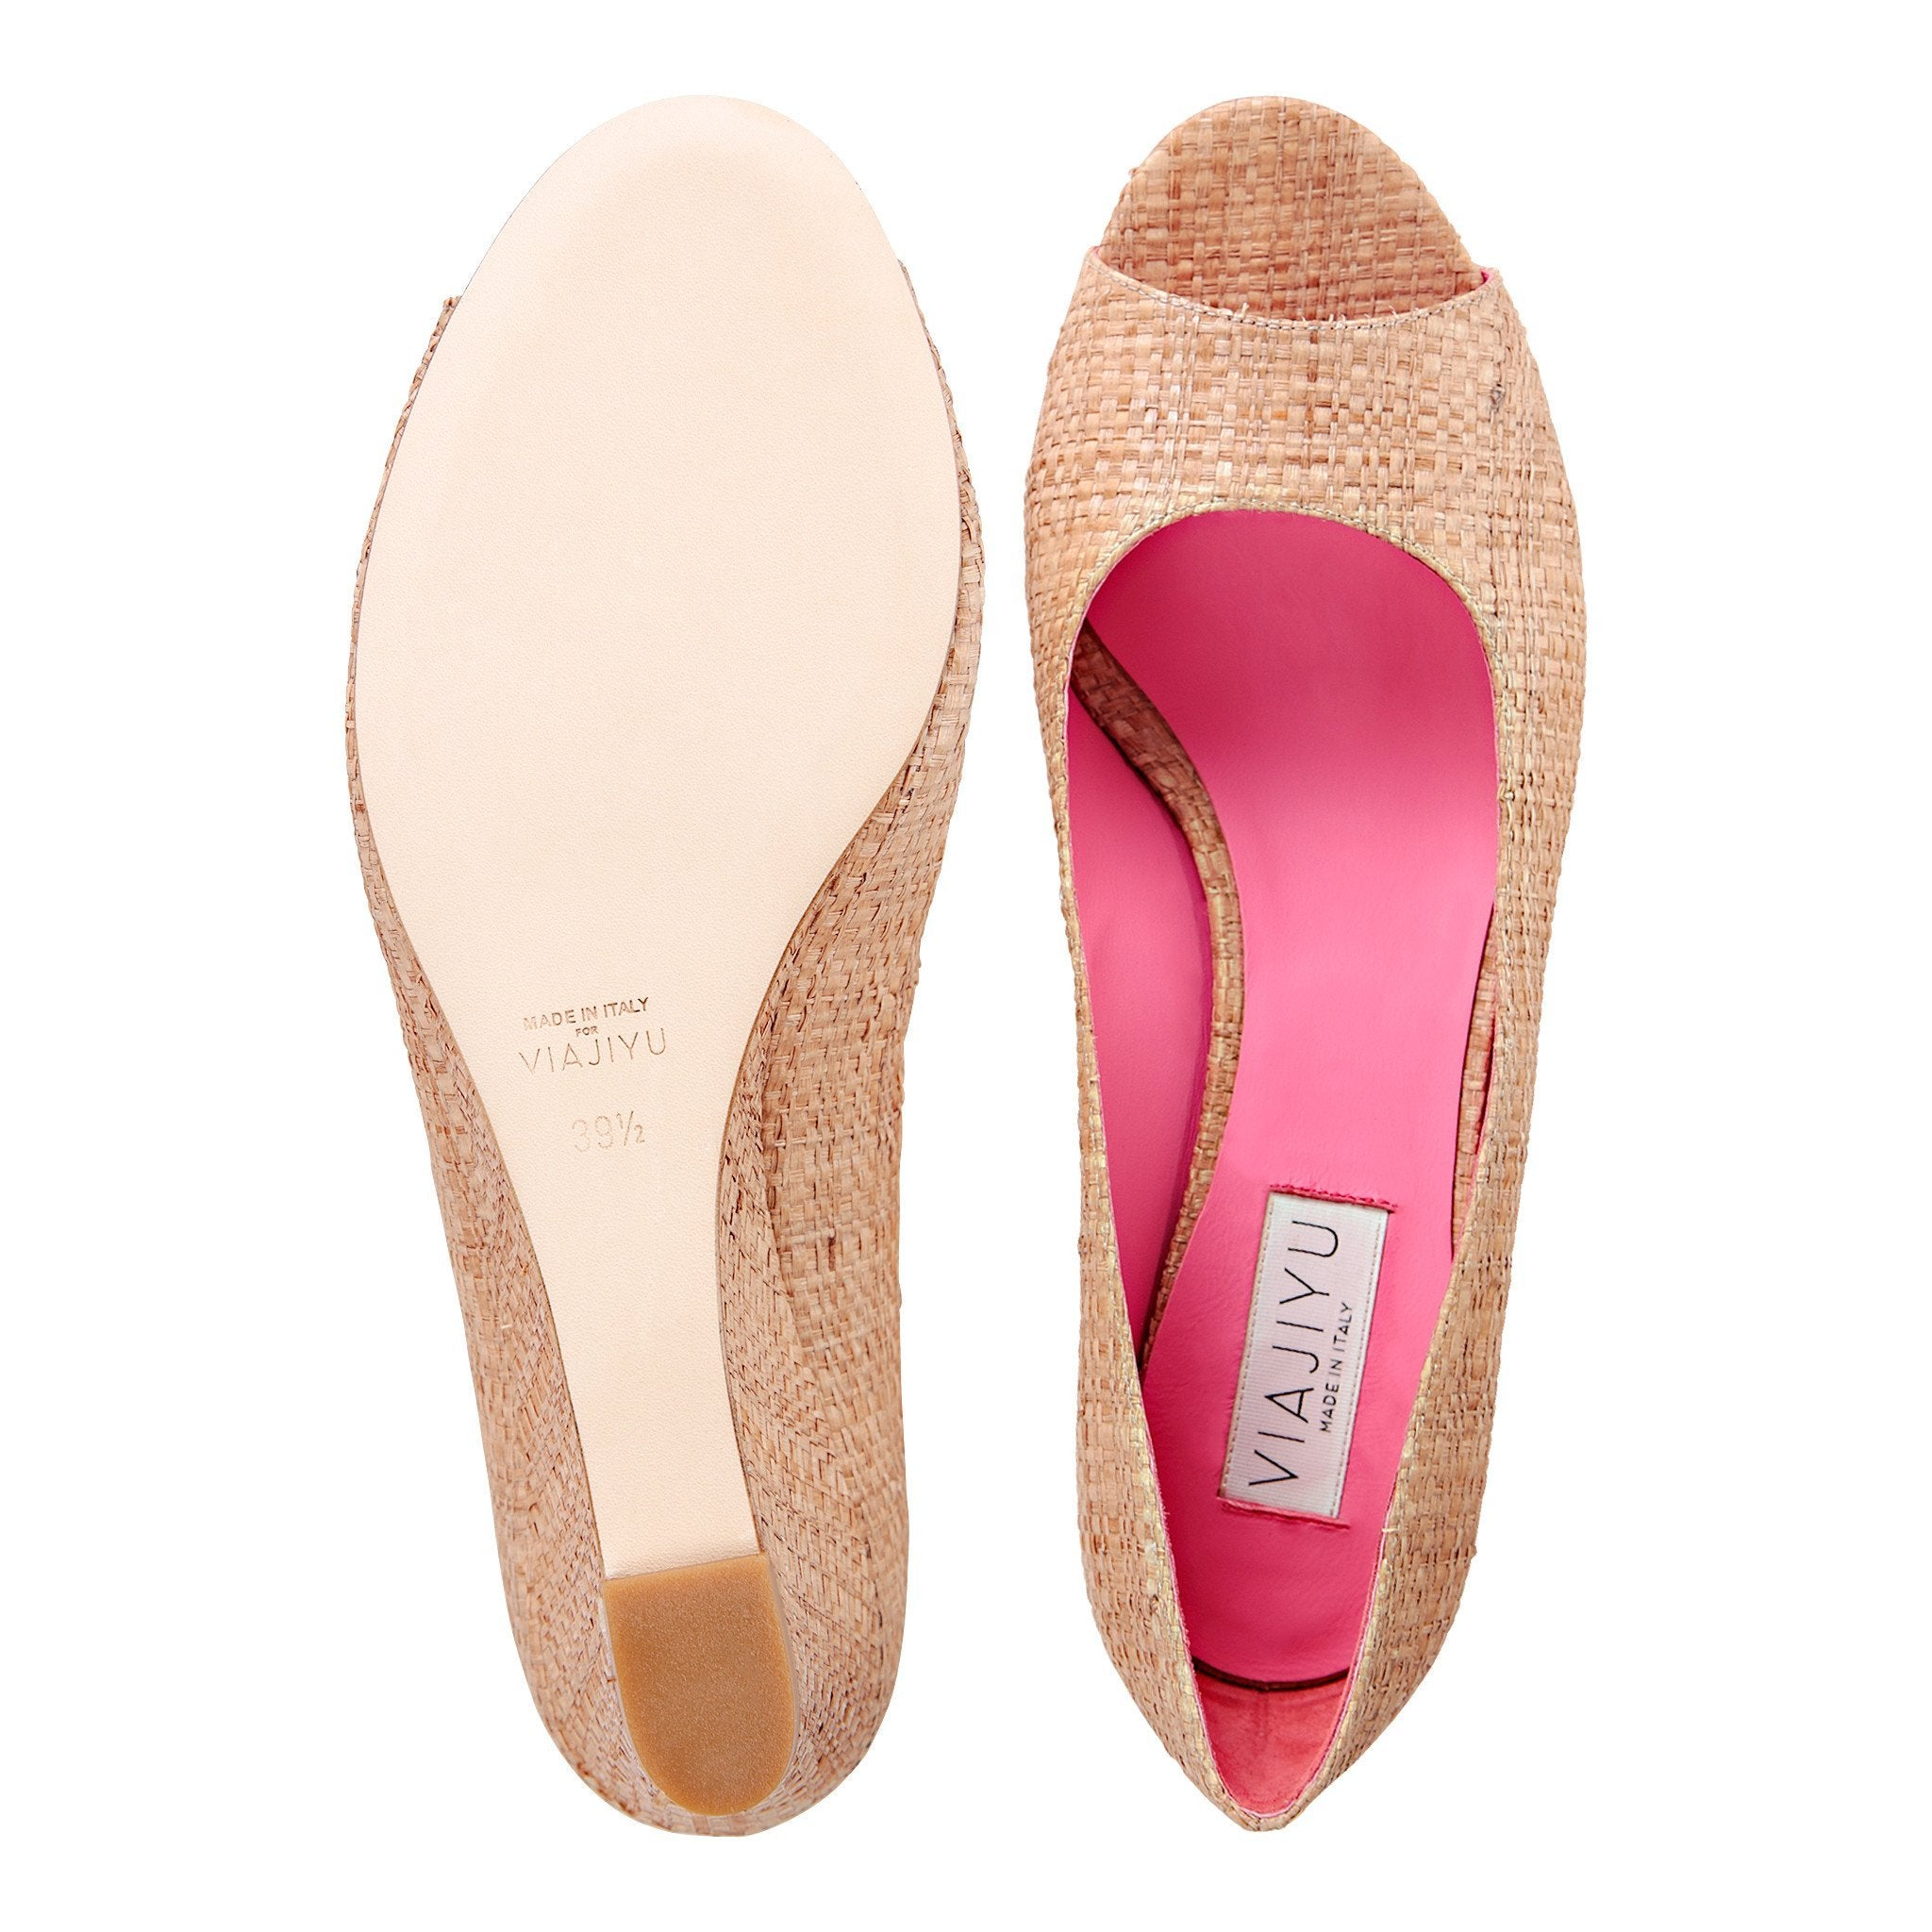 SARDINIA - Raffia Natural + Pink Inside, VIAJIYU - Women's Hand Made Sustainable Luxury Shoes. Made in Italy. Made to Order.